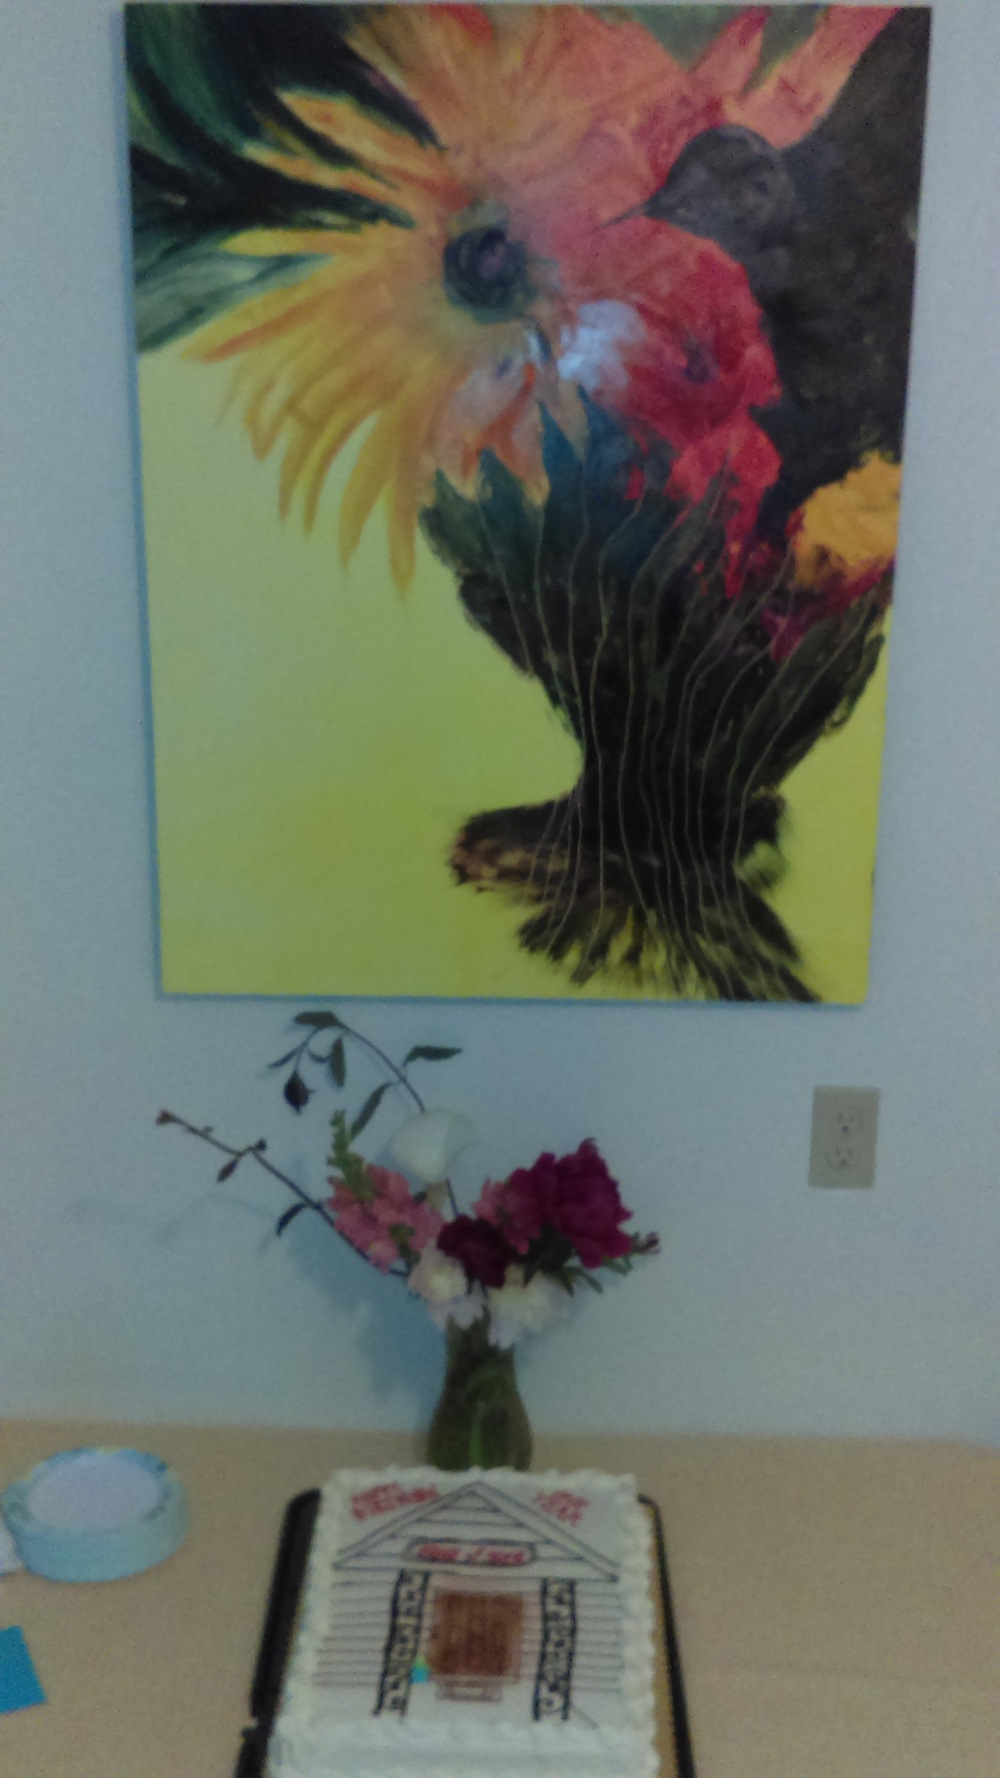 Our wonderful gift of the Hummingbird, by Barb Yeakel, daughter of Judy Yeakel, who founded the House of Hope 30 years ago, now hangs in our welcoming dining room.  Right where it belongs.